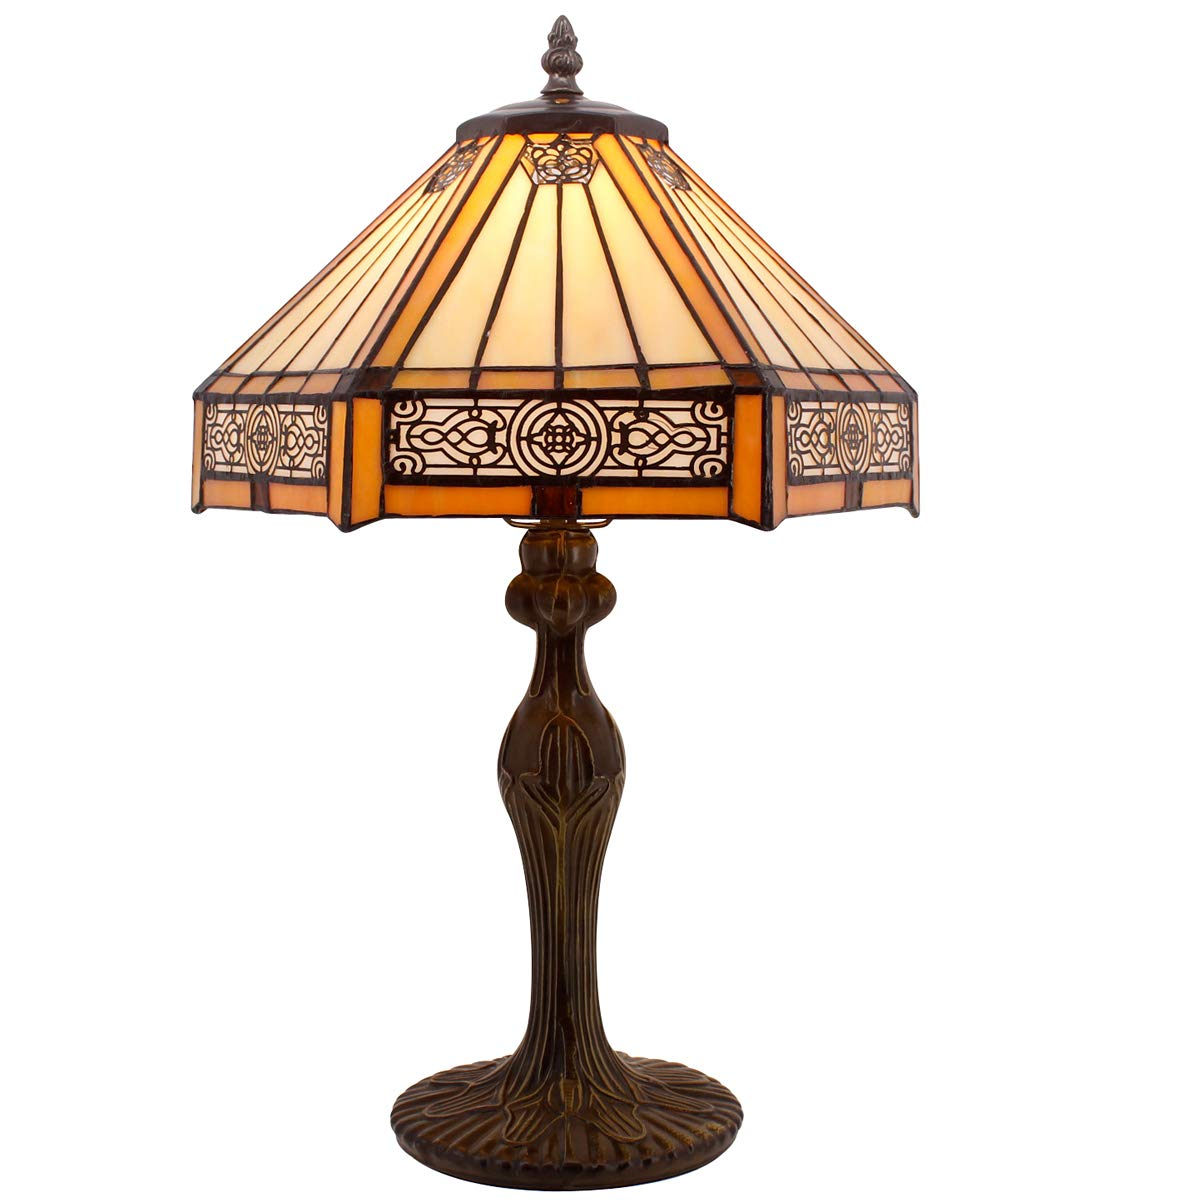 Tiffany Lamp Yellow Hexagon Stained Glass Lampshade Antique Base Mission Style End Coffee Table Lamps Read Lighting W12 H18 Inch for Living Room Bedroom Bedside Desk S011 WERFACTORY